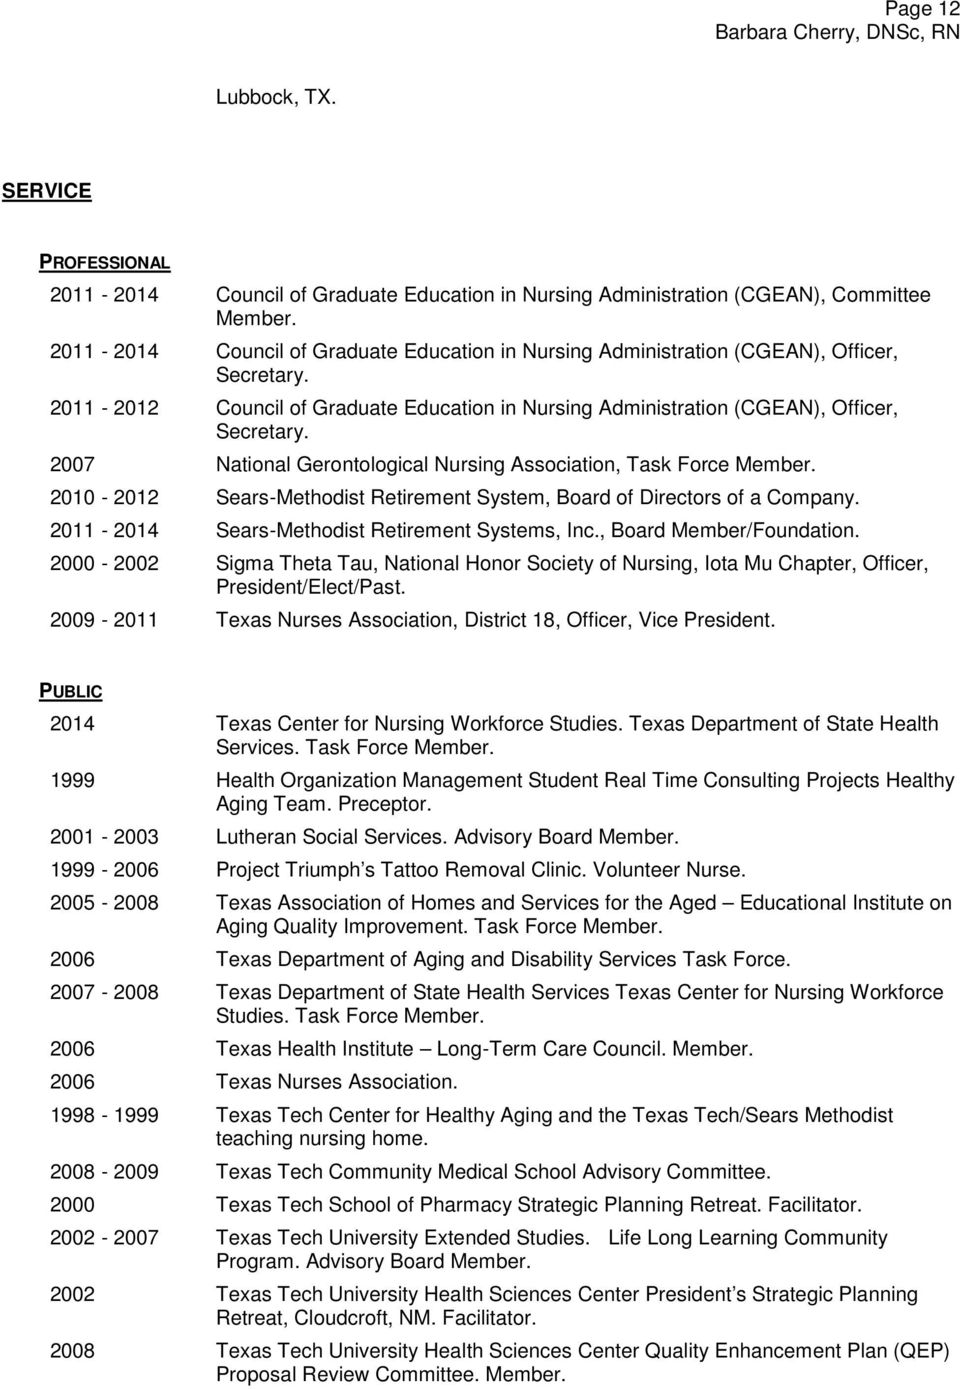 2007 National Gerontological Nursing Association, Task Force Member. 2010-2012 Sears-Methodist Retirement System, Board of Directors of a Company. 2011-2014 Sears-Methodist Retirement Systems, Inc.